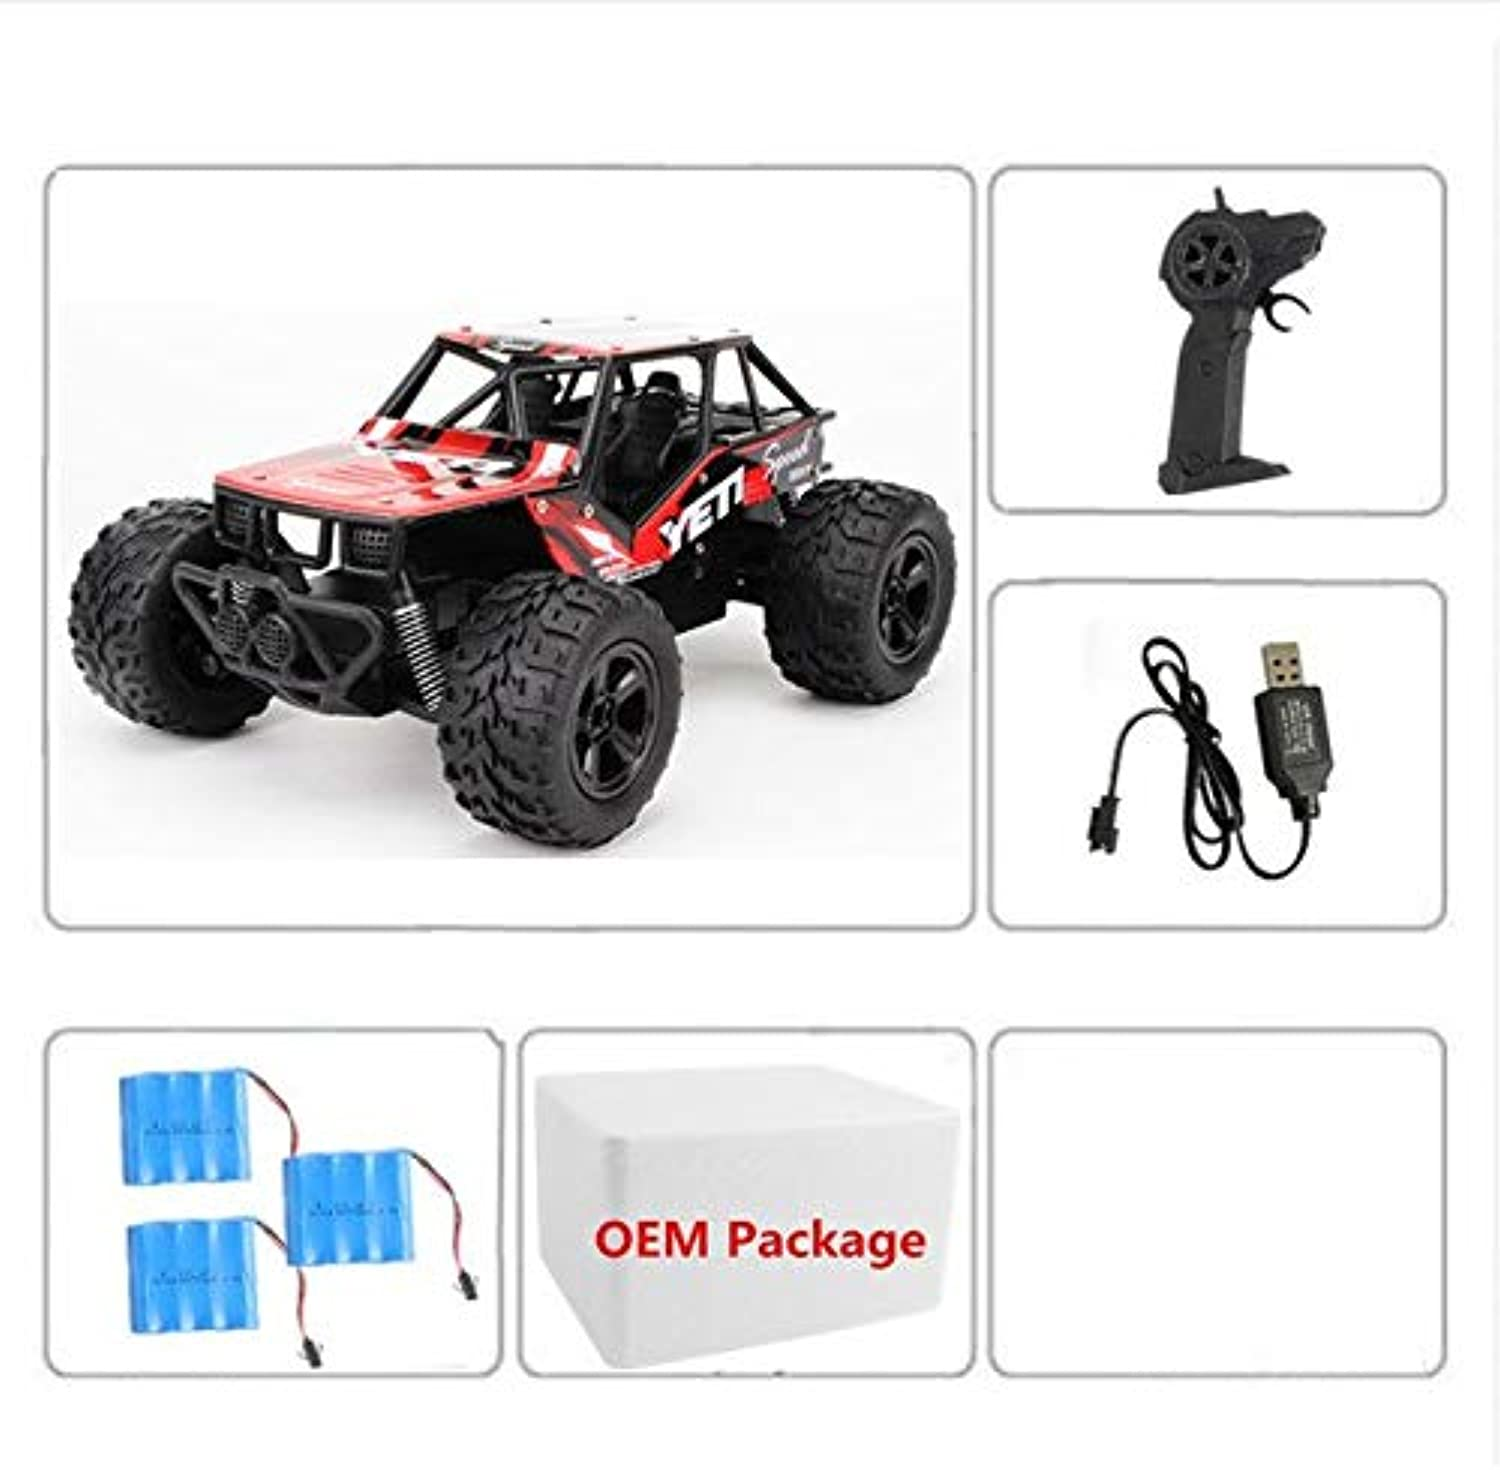 Generic RC Car Remote Control Car 1 20 RC Military Truck Mini OffRoad Car with Light RTR 4WD DIY Car Kit 1 20 RC Toy Gift VS WPL B1 9